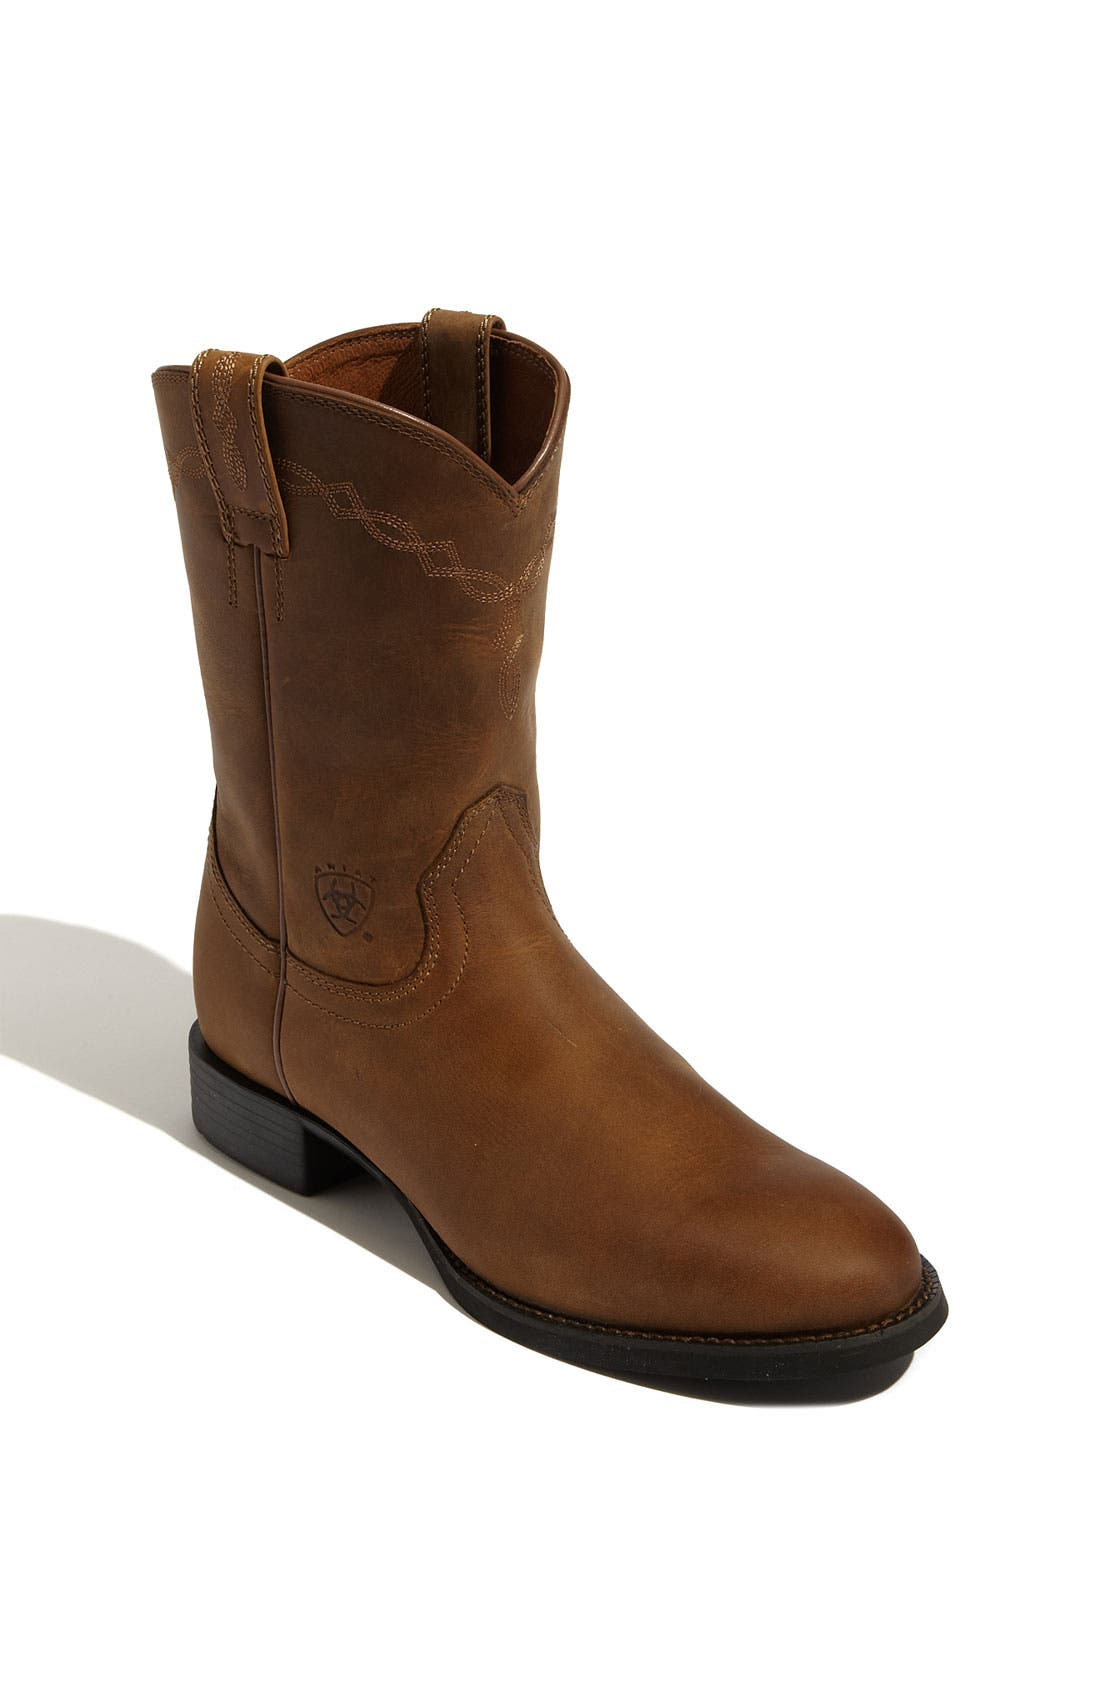 Alternate Image 1 Selected - Ariat 'Heritage Roper' Boot (Online Only) (Men)